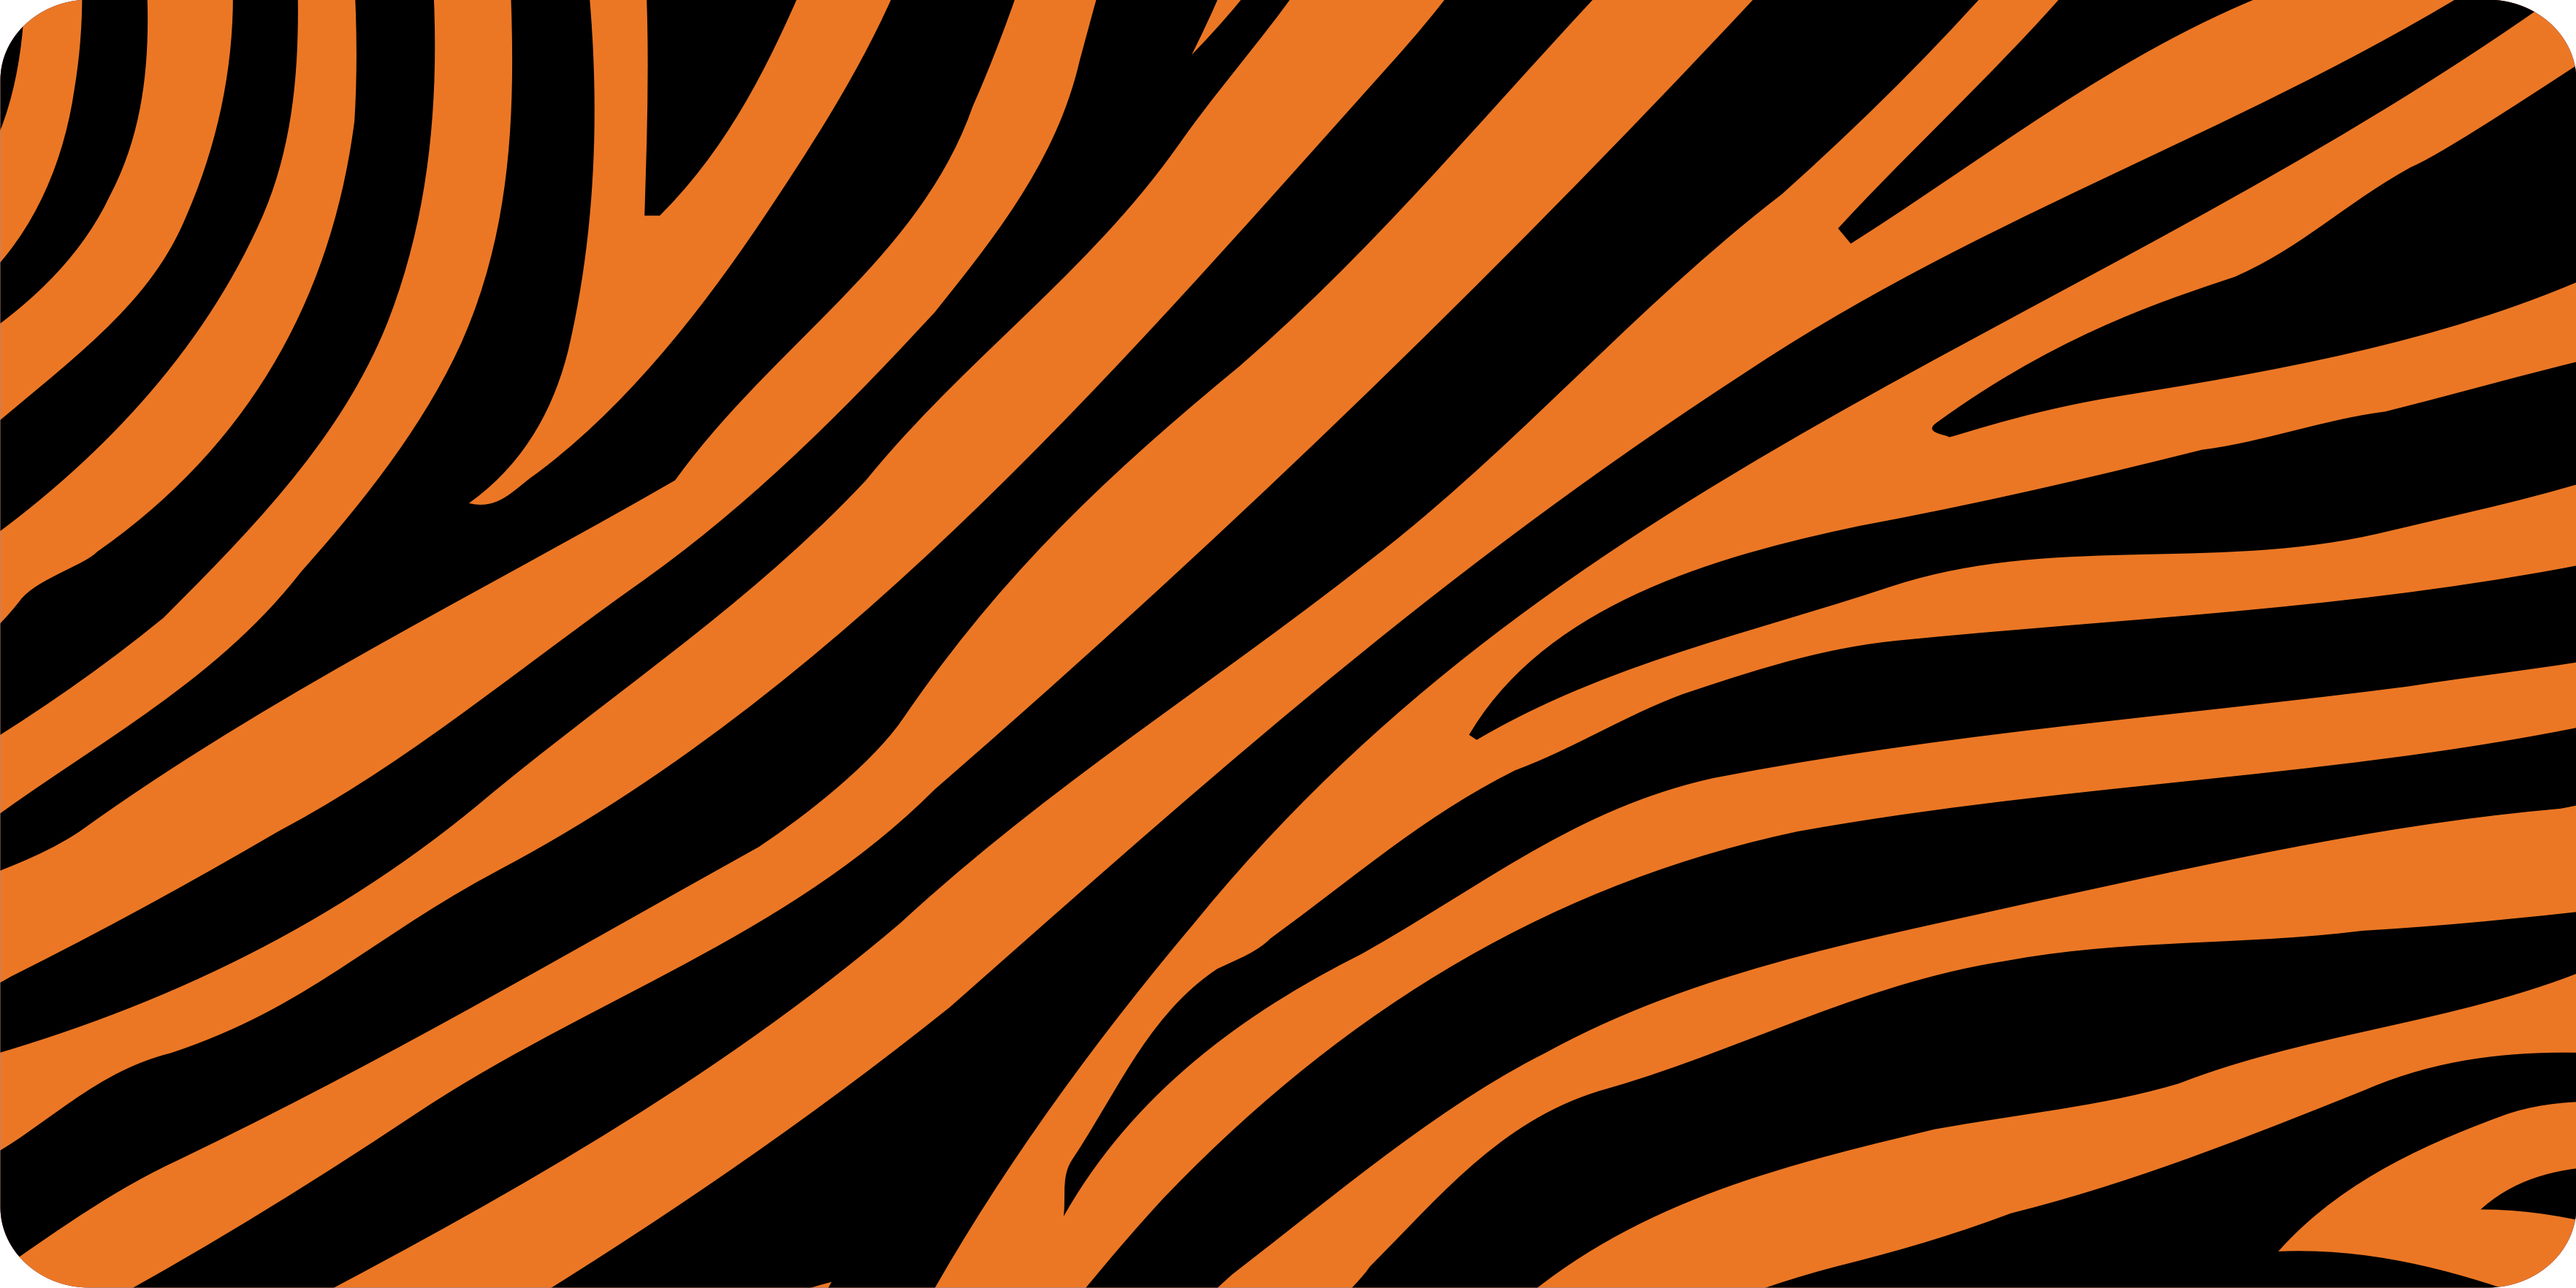 3526x1763 Collection Of Tiger Stripes Clipart High Quality, Free